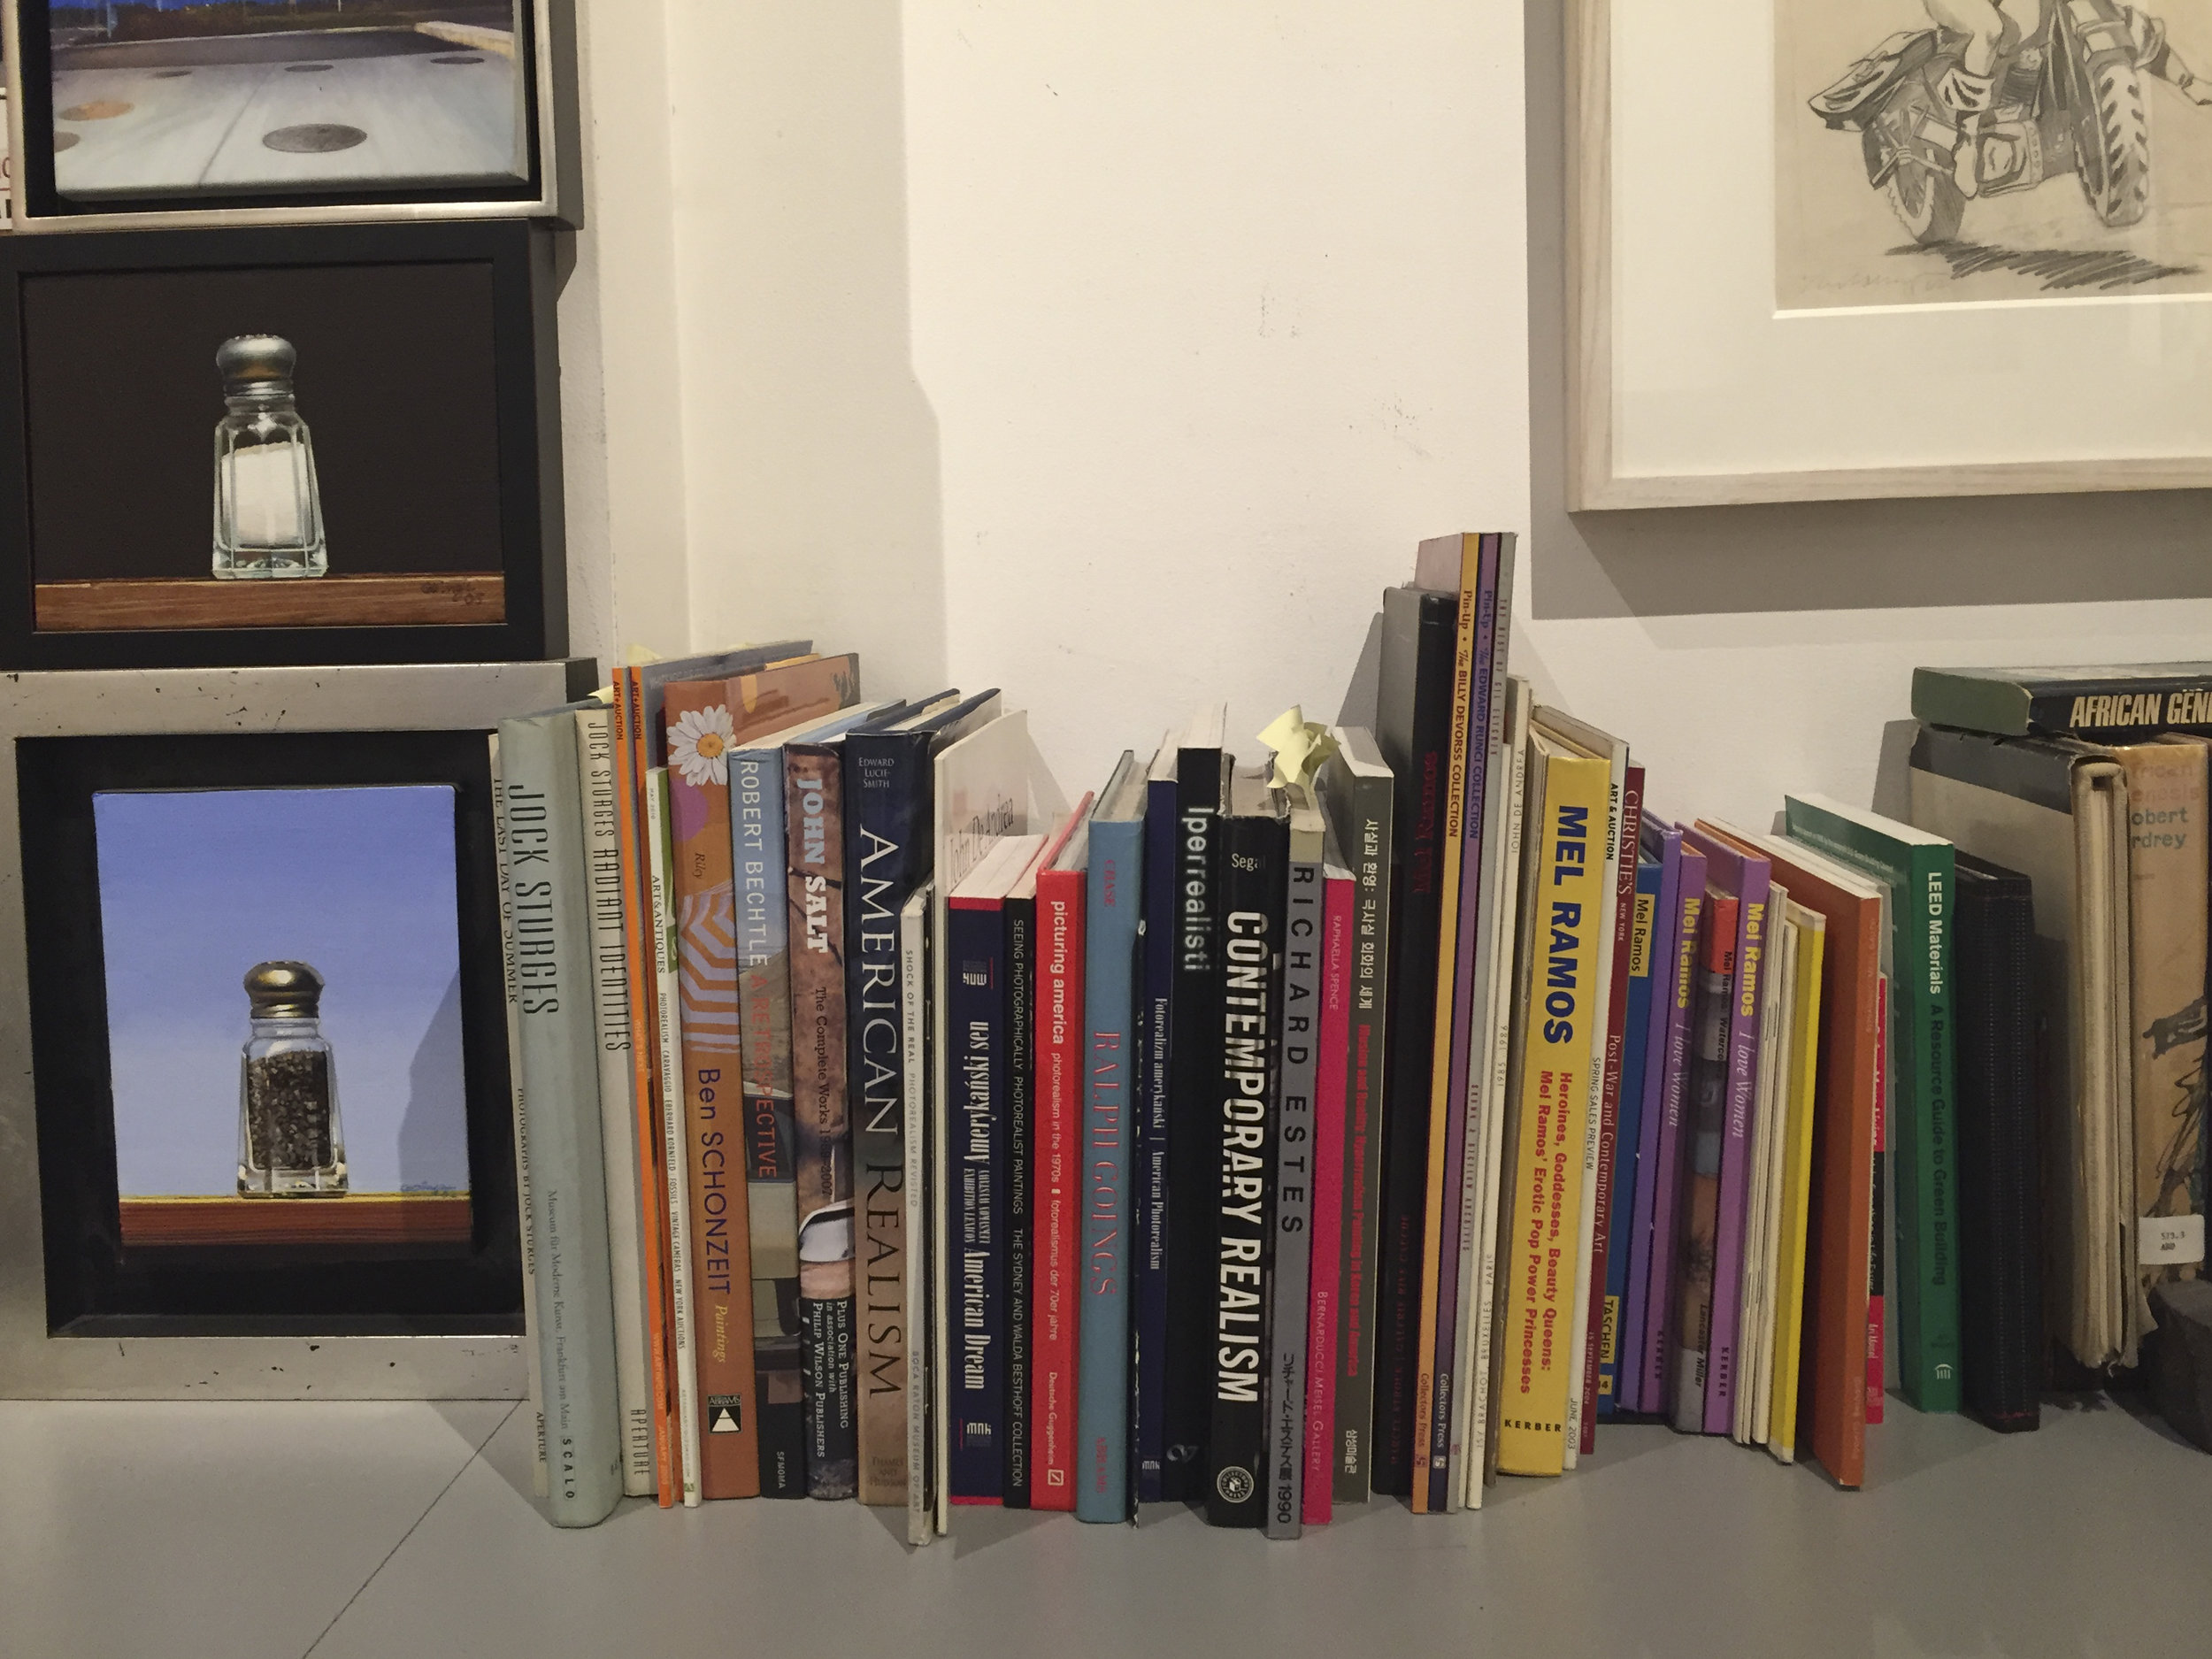 Small books and small works in the Meisel Gallery